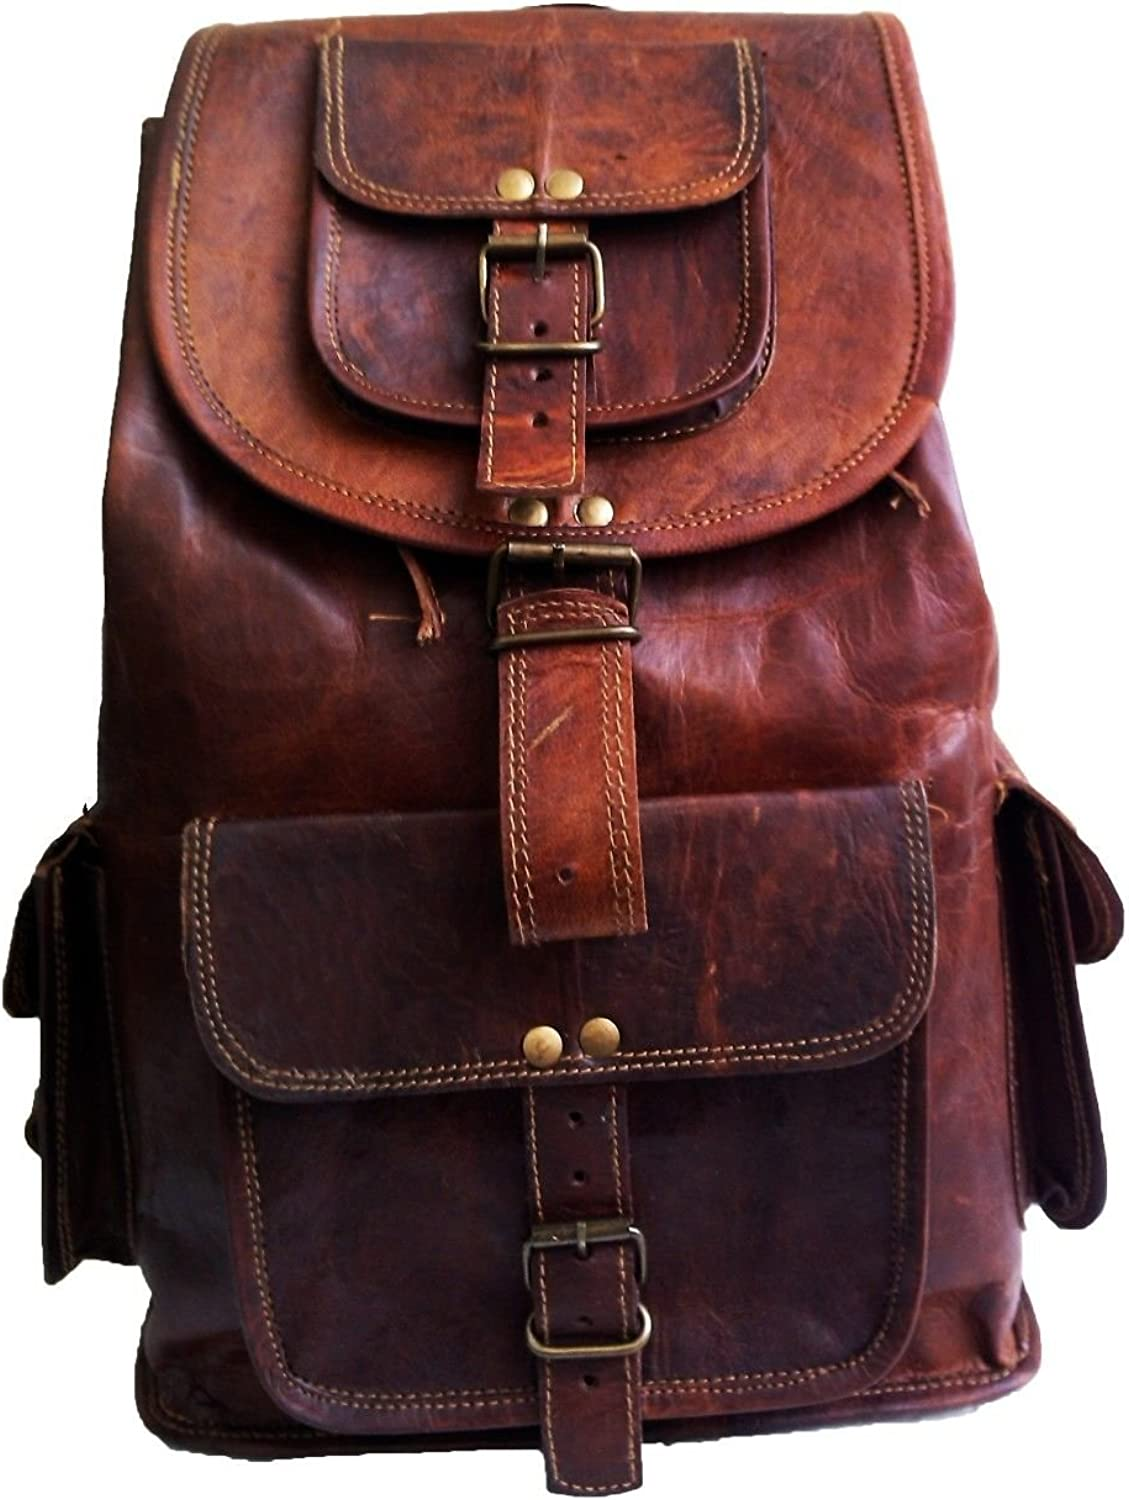 18 Leather Backpack Travel rucksack knapsack daypack Bag